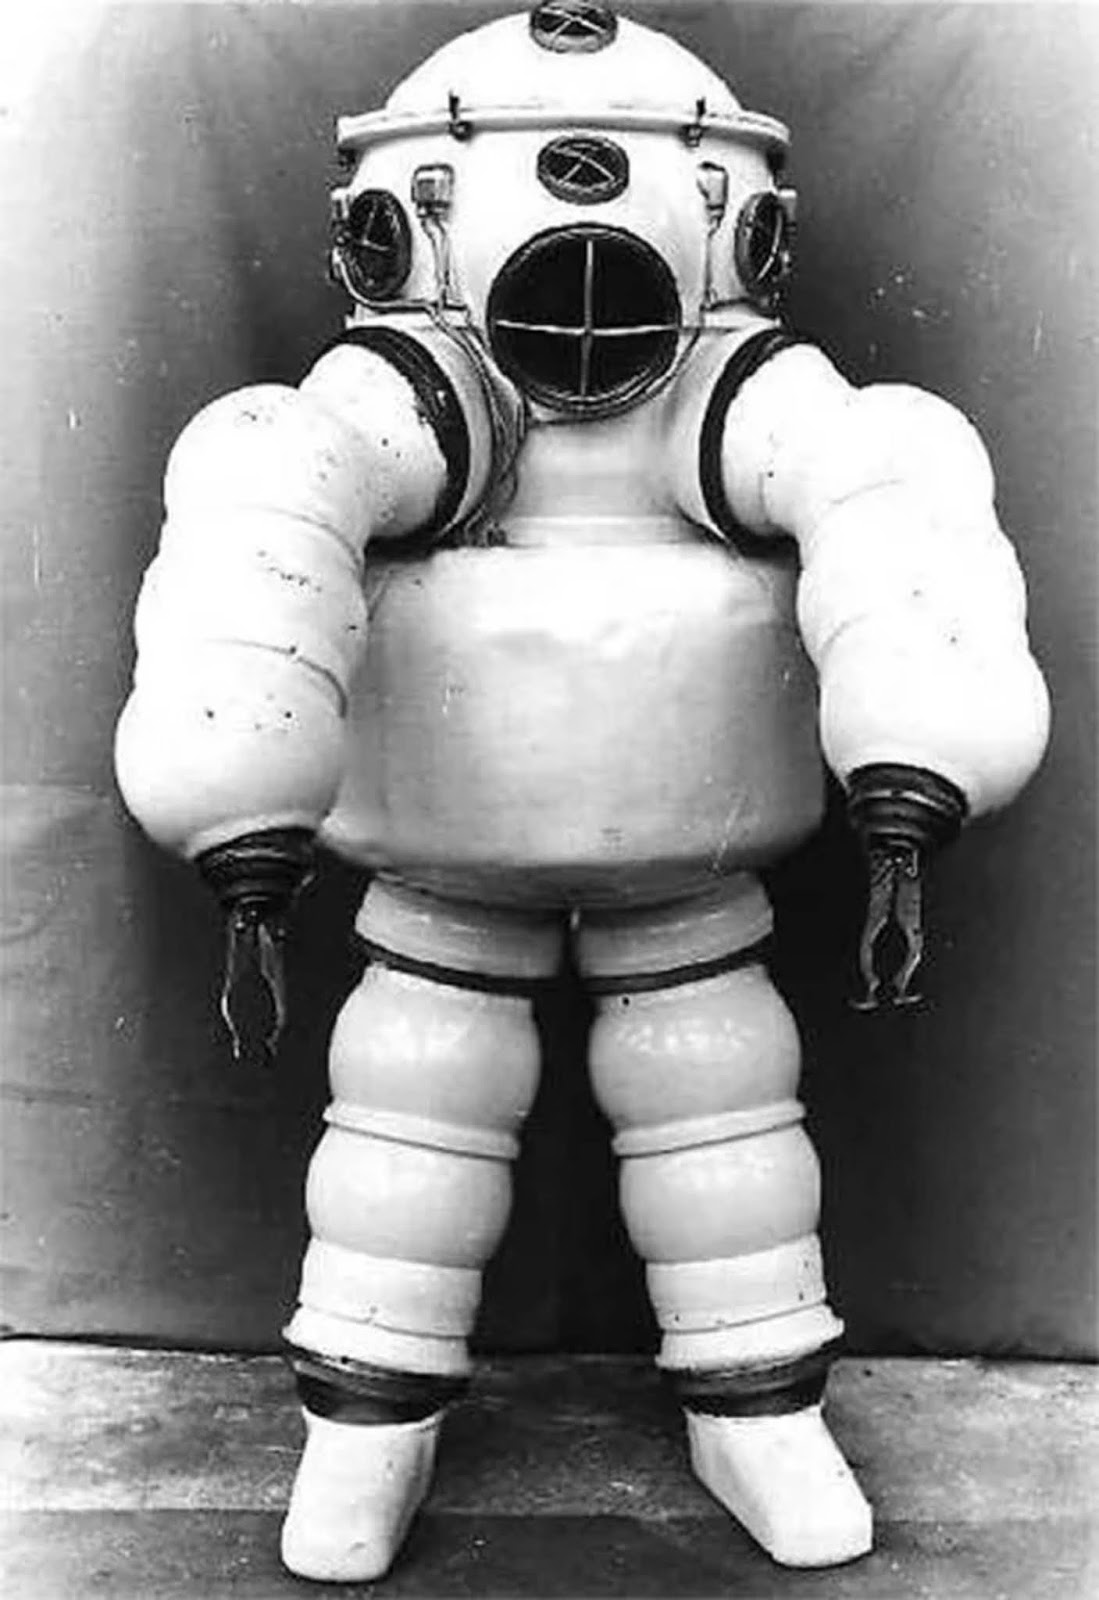 Neufeldt-Kuhnke suit. This third generation shell (produced between 1929-1940) with a closed circuit breathing system was safe up to a depth of 525 feet (160 m), and had a telephone.